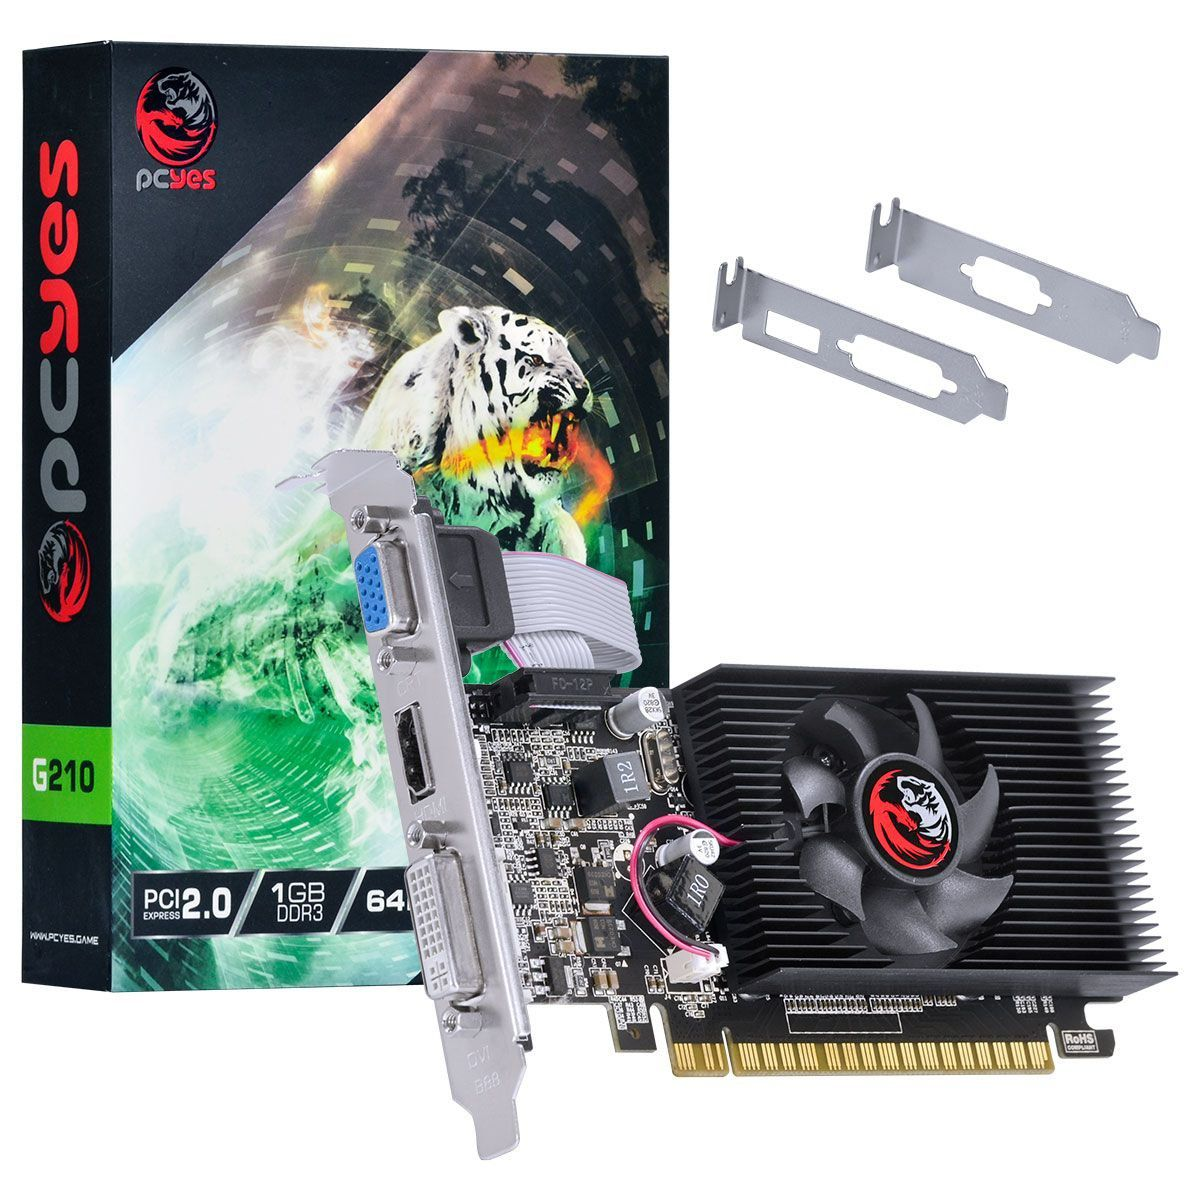 PLACA DE VÍDEO GEFORCE GT 210 1GB PCYES